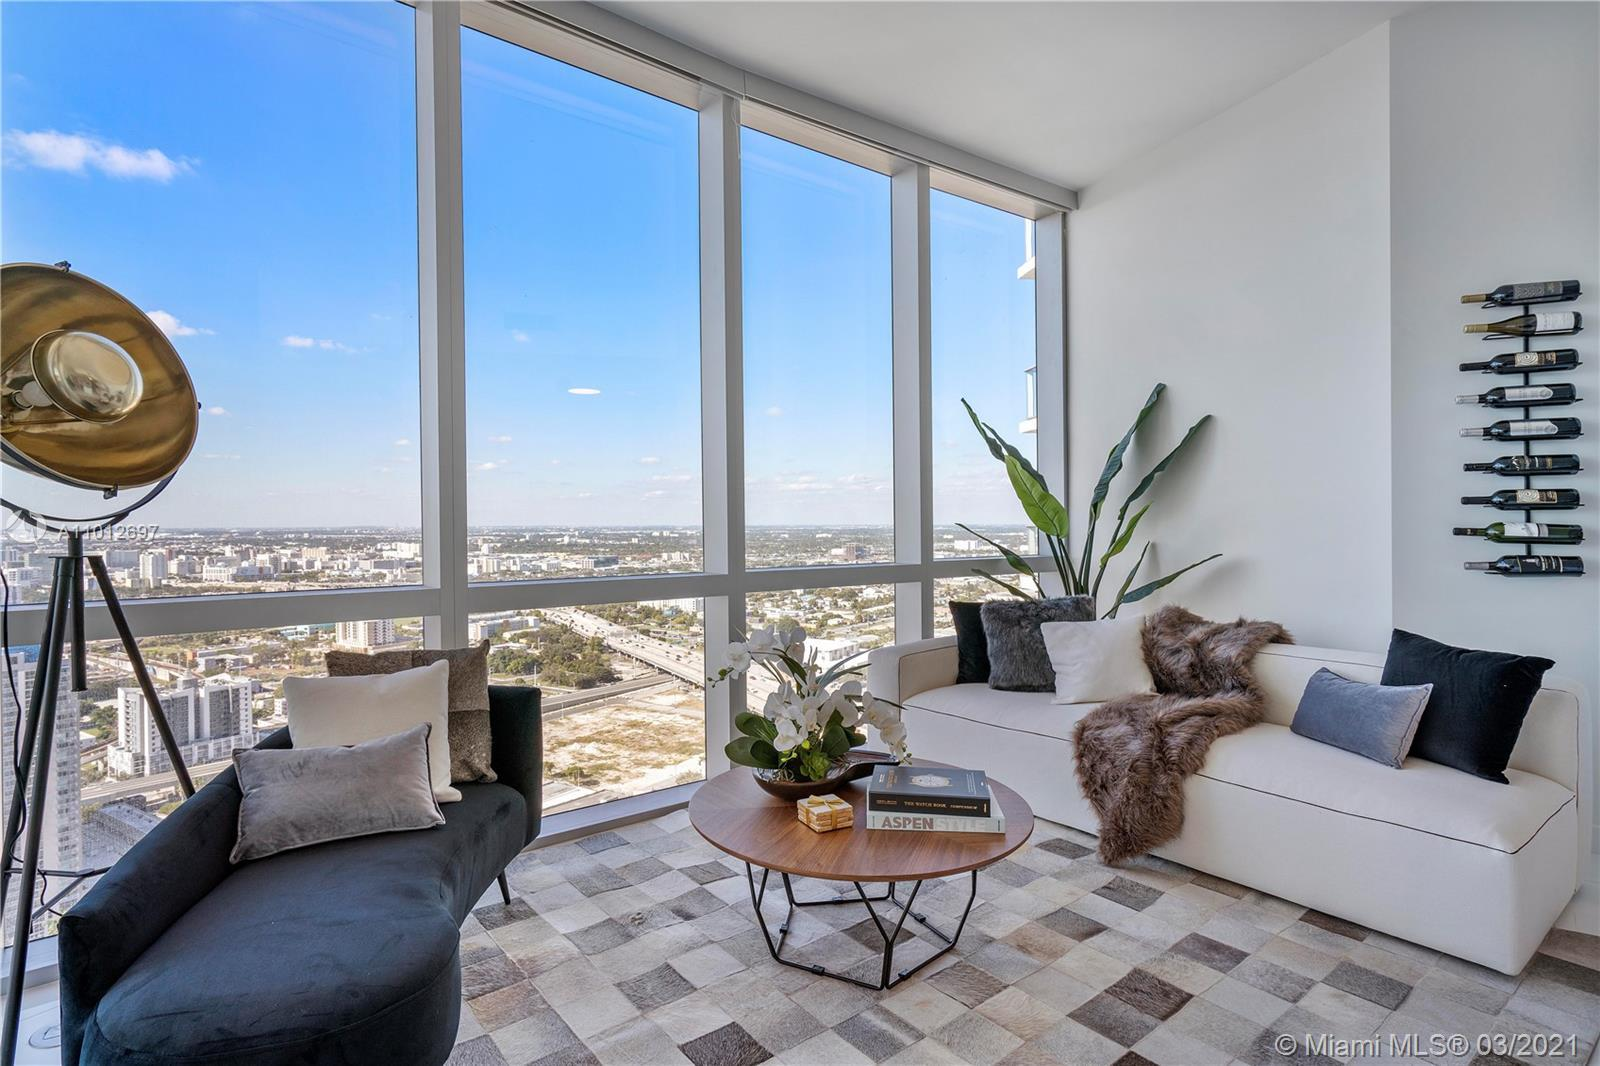 AMAZING unit 1 bed+ 1 den 2 full bath.1254 sql, open balcony, 10 foot ceiling with private entry foy